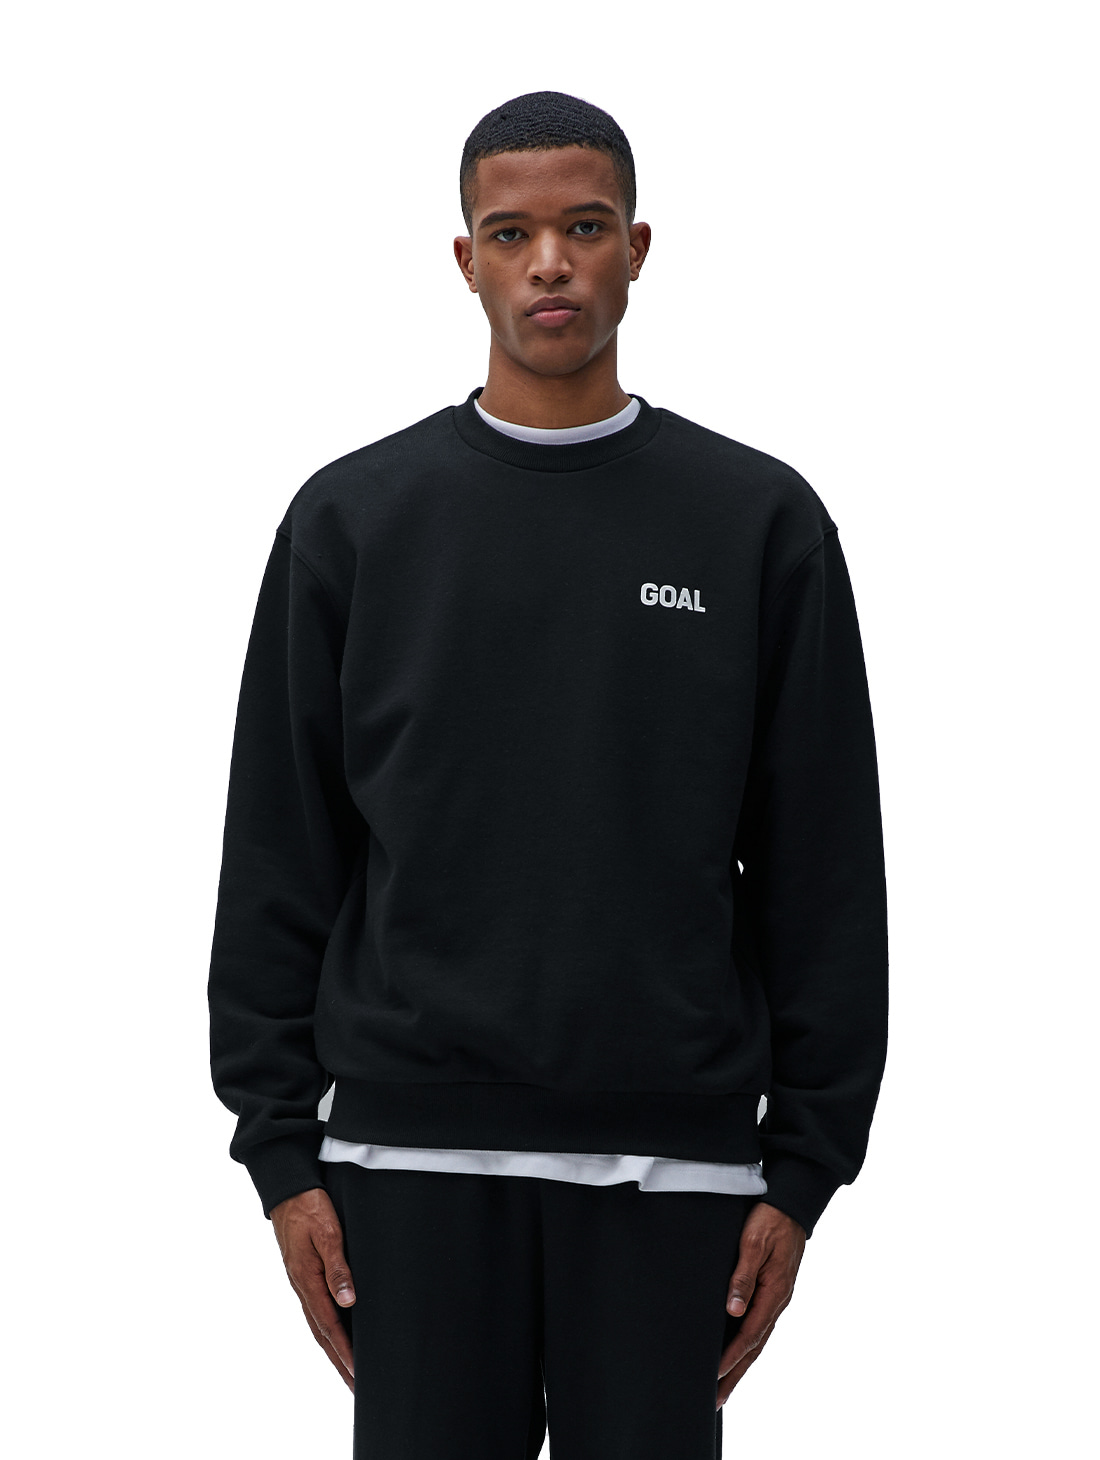 GOALSTUDIO FLOCKING SWEATSHIRT - BLACK